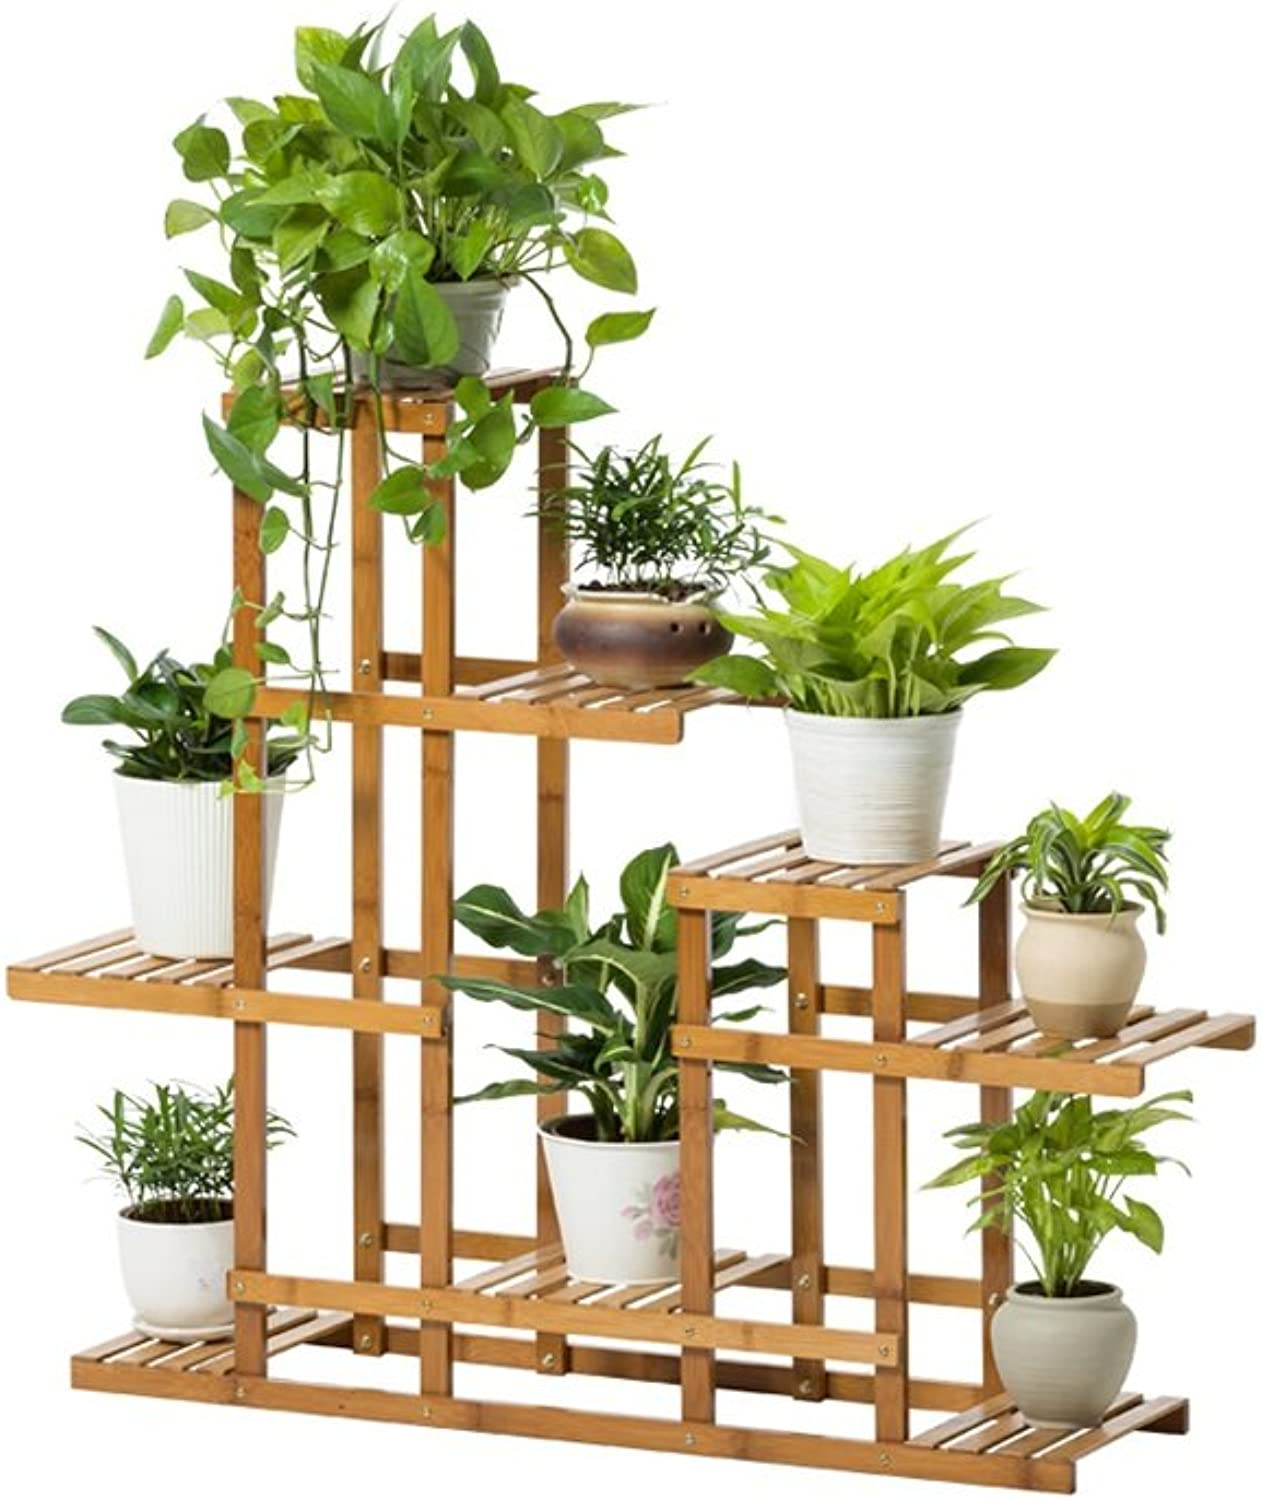 WAN SAN QIAN- Bamboo Floor Stand Multi - Storey Balcony Living Room Flower Shelf Combination Flower Frame Carbonization Flower Rack 90x25x85cm Flower racks